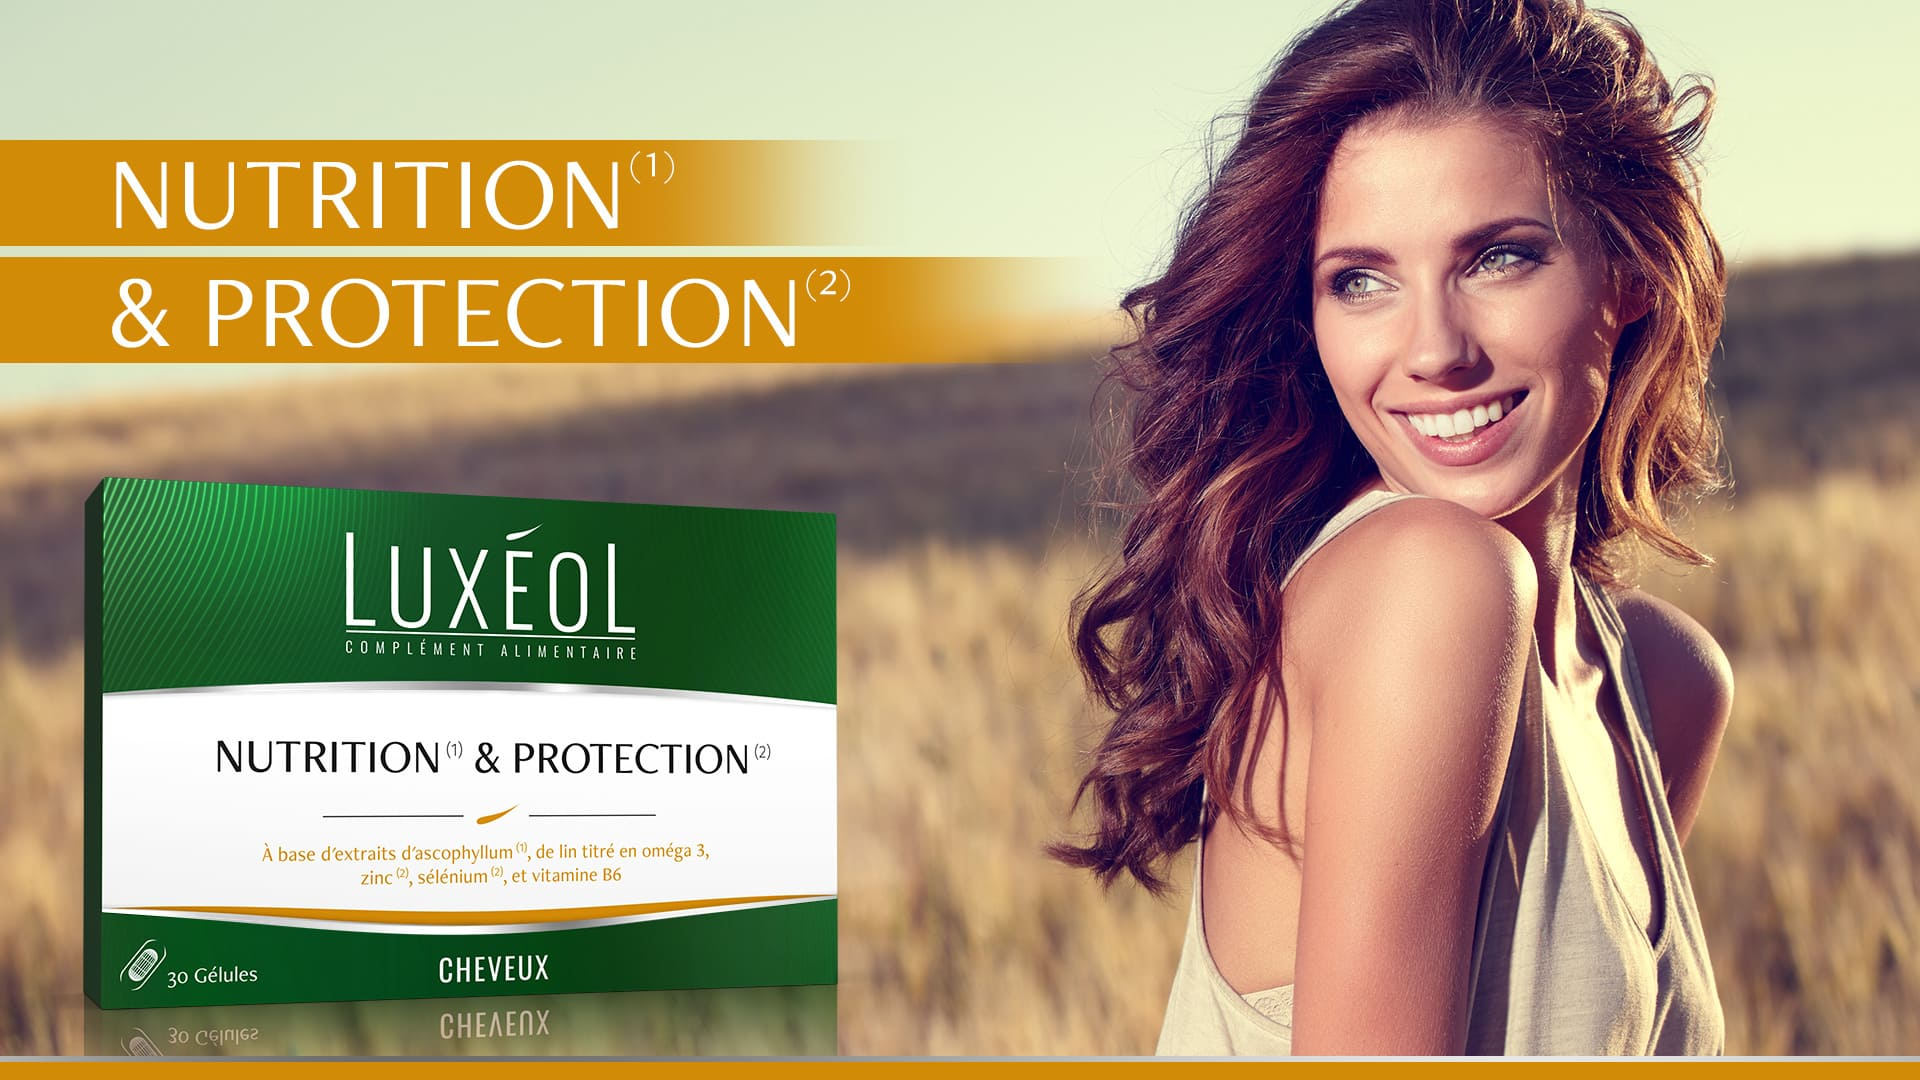 Luxéol Nutrition & Protection